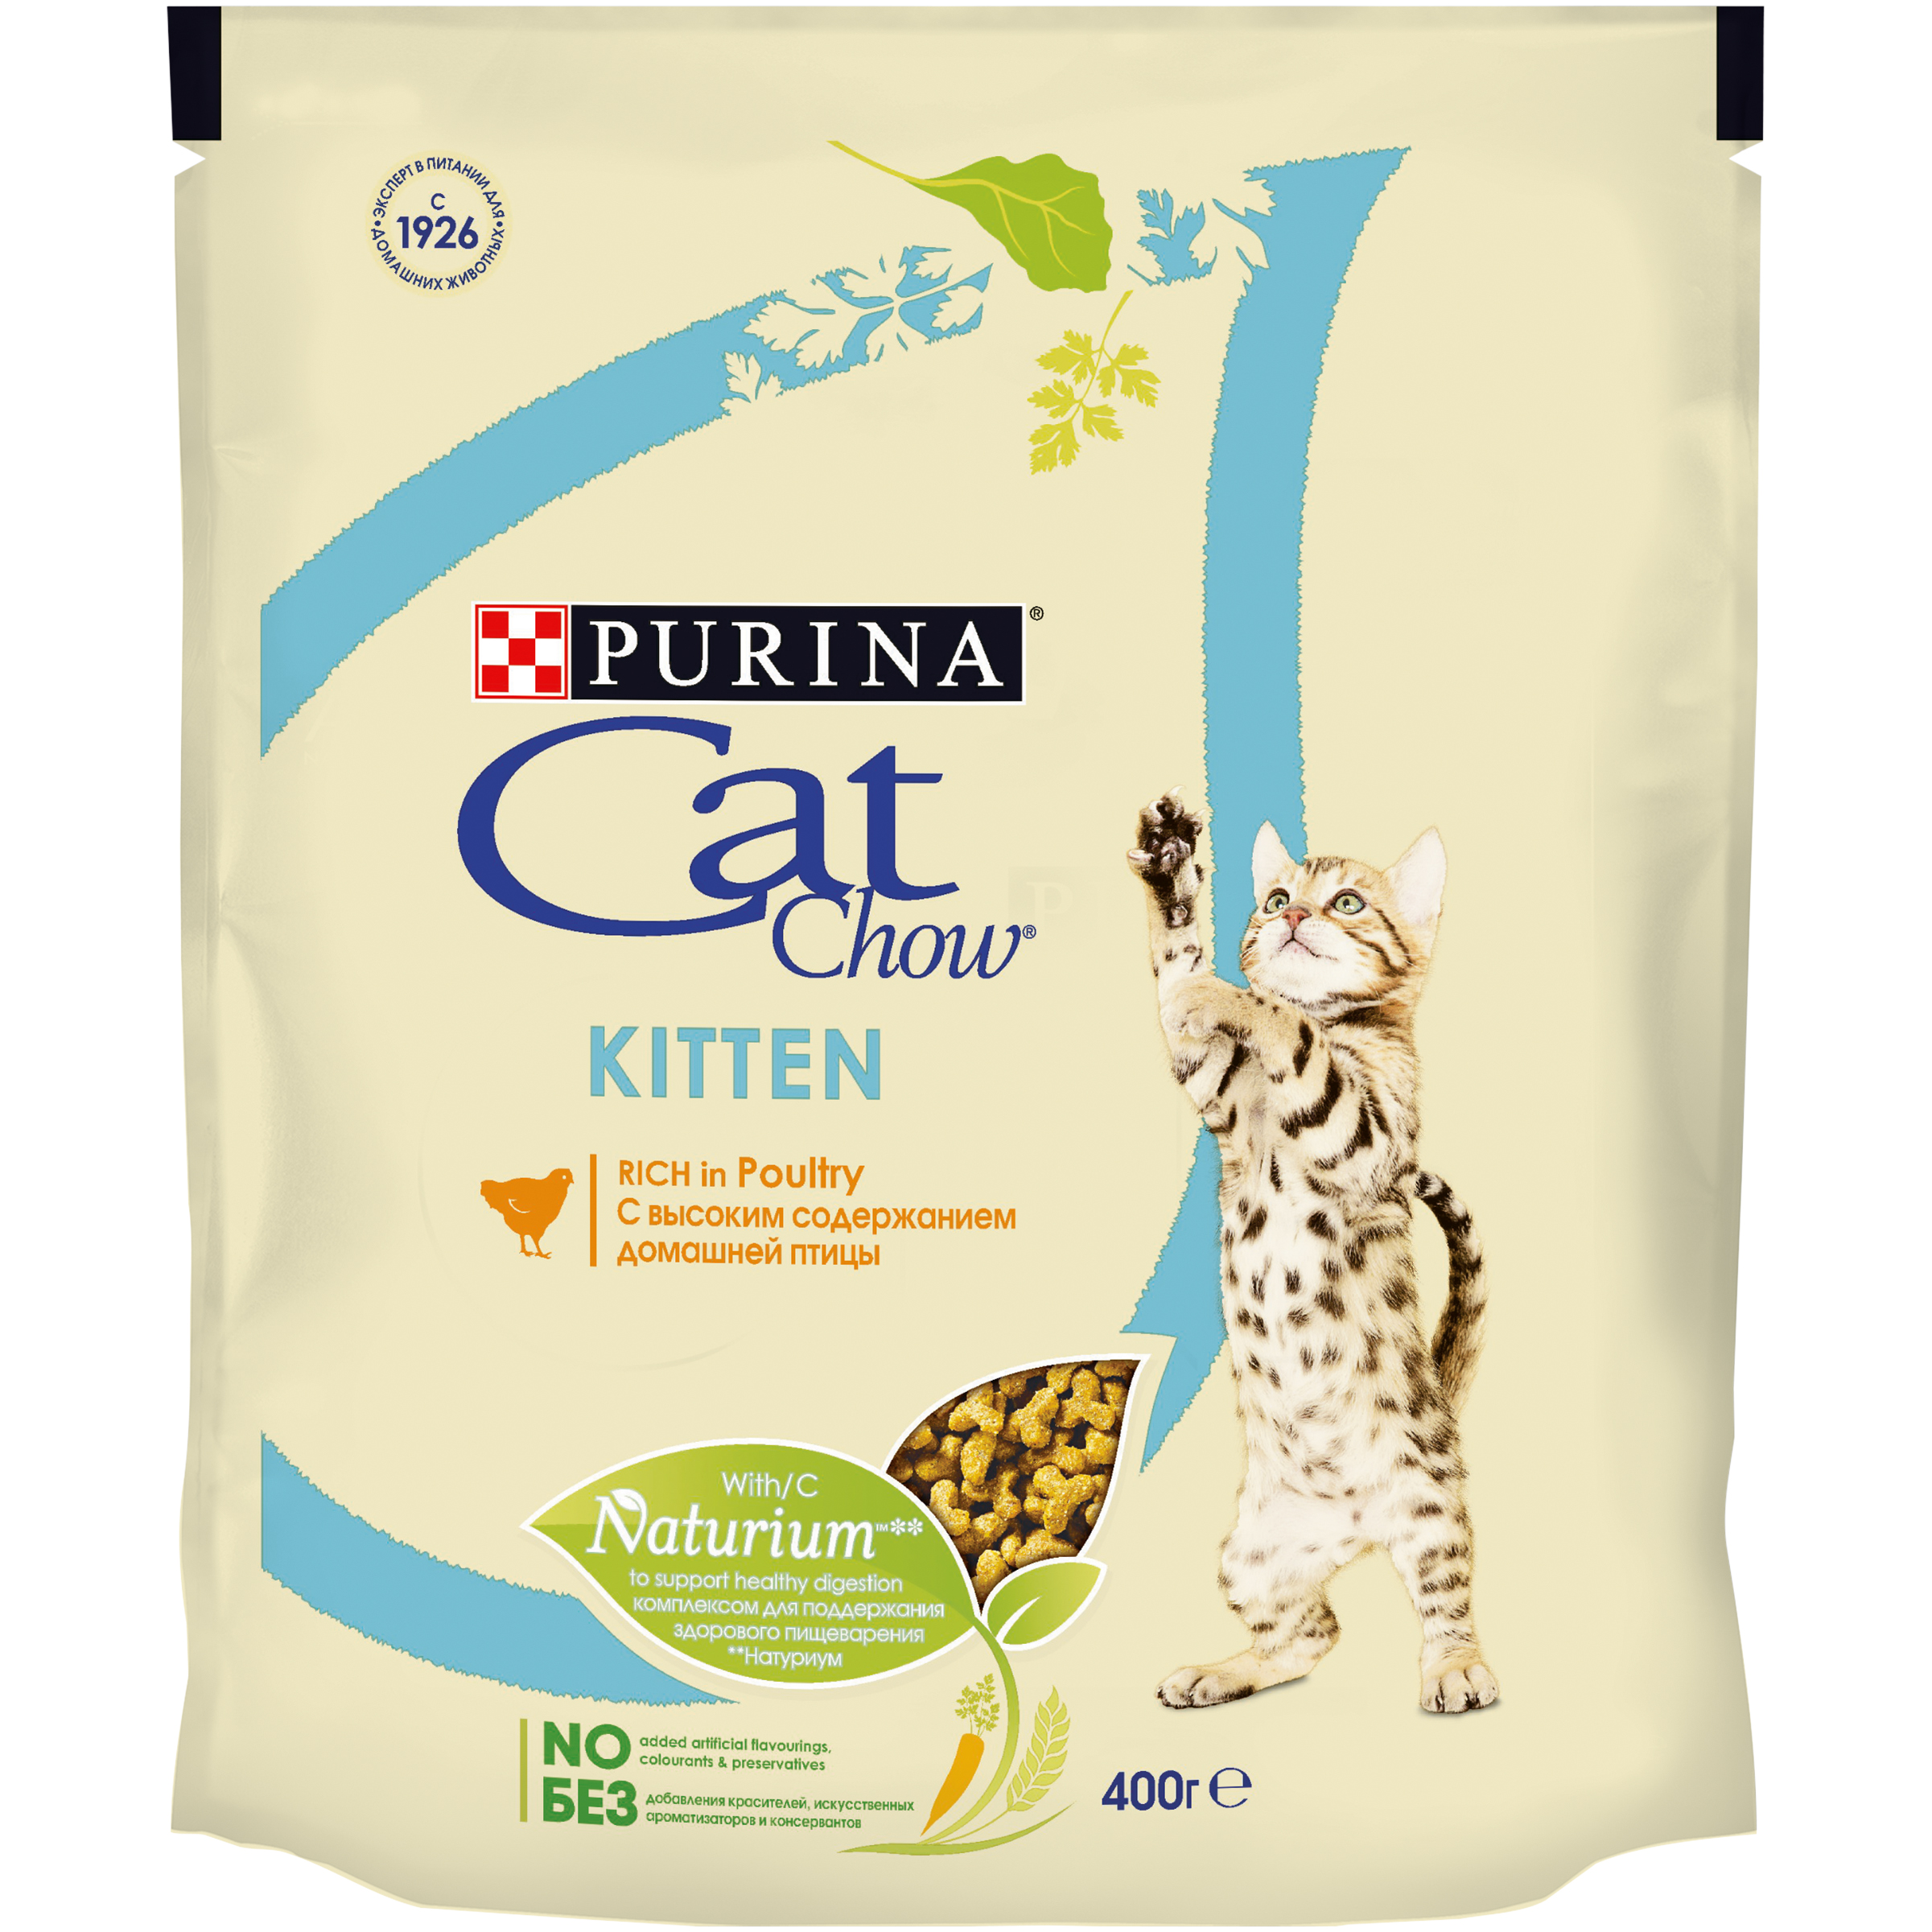 Cat Chow dry food for kittens with poultry, Package, 400 g prevital prevital cat food sterile with poultry